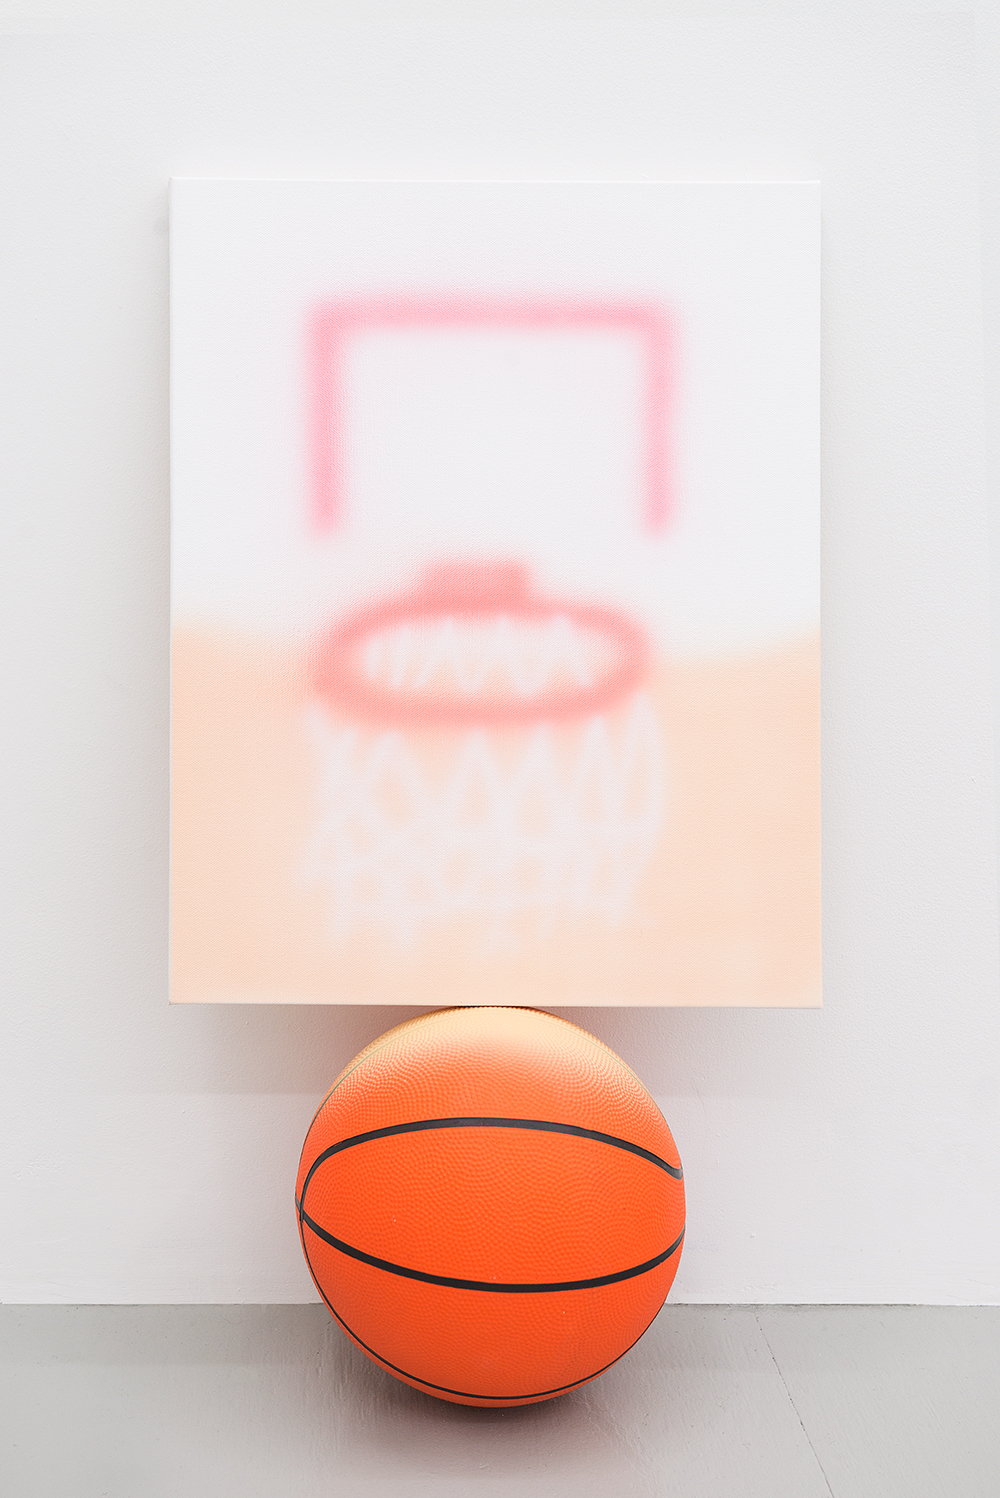 Jonny Paul Gillette goal on basketball ball, 2015 Acrylic polymer on canvas, basketball ball  2015